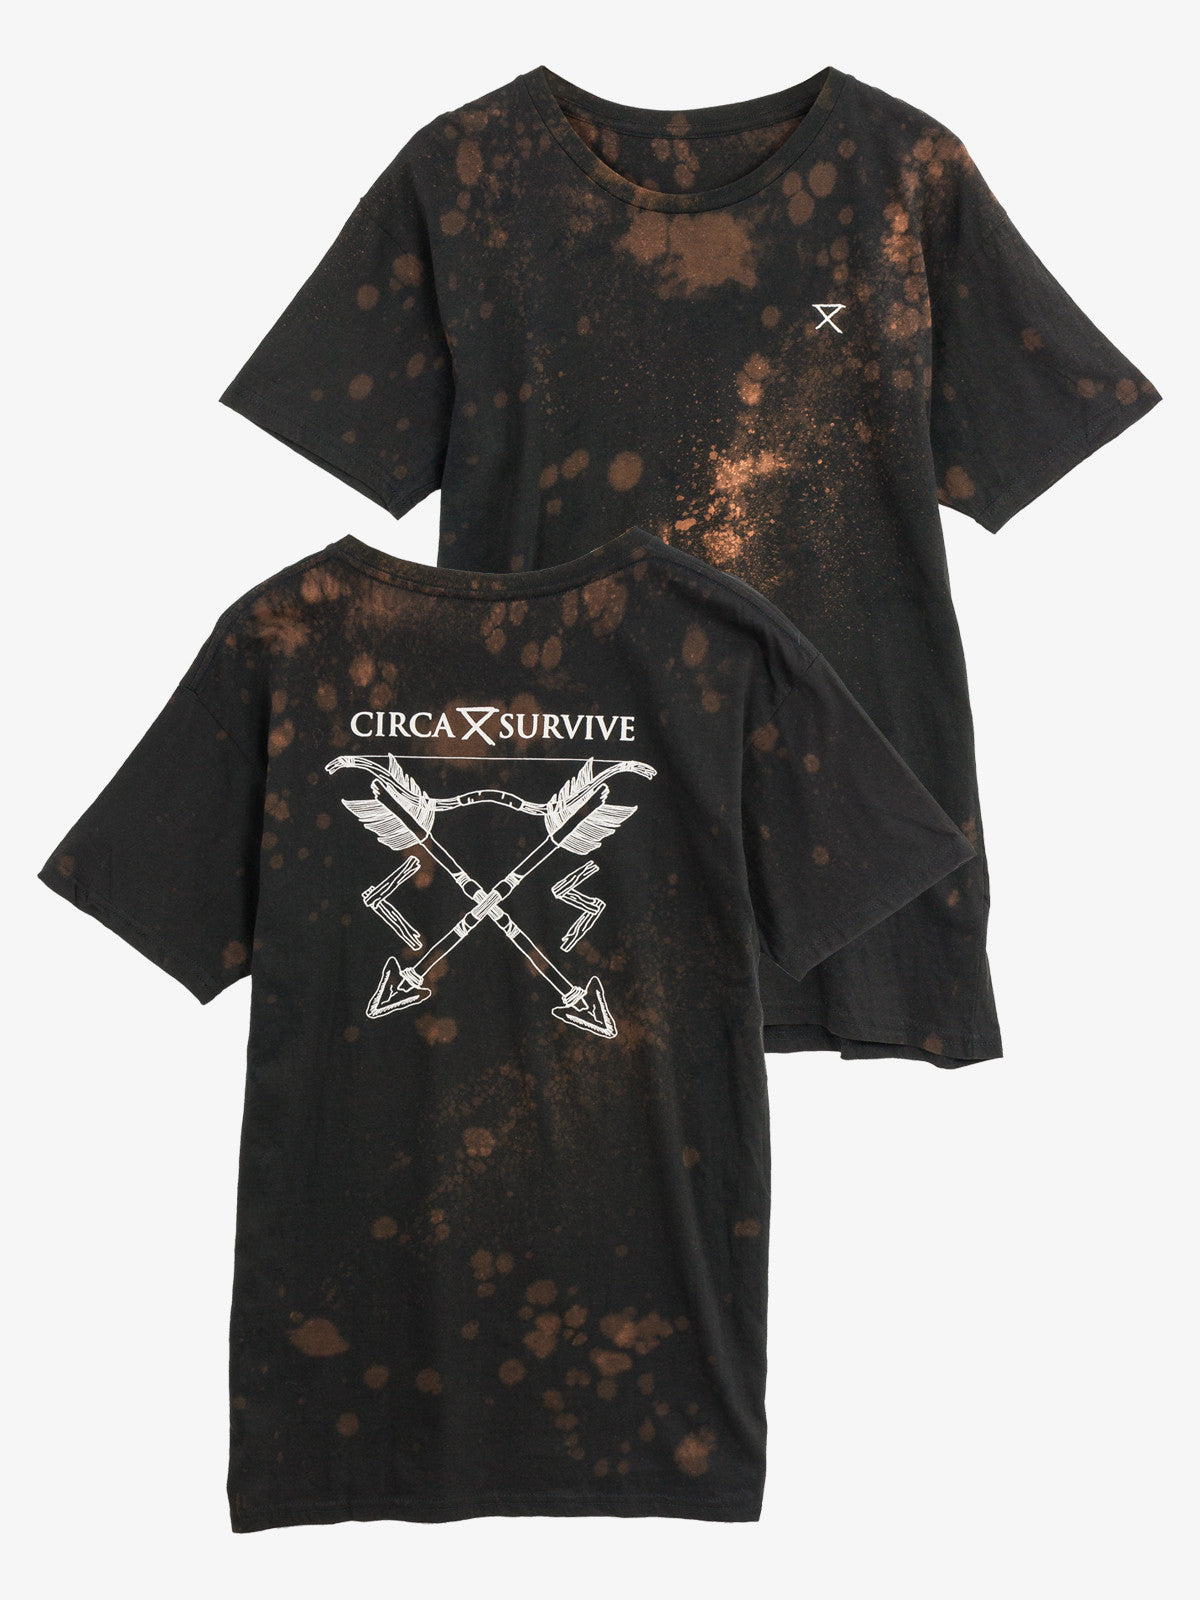 Circa Survive - Embroidered Bleached Shirt - MerchLimited - 1